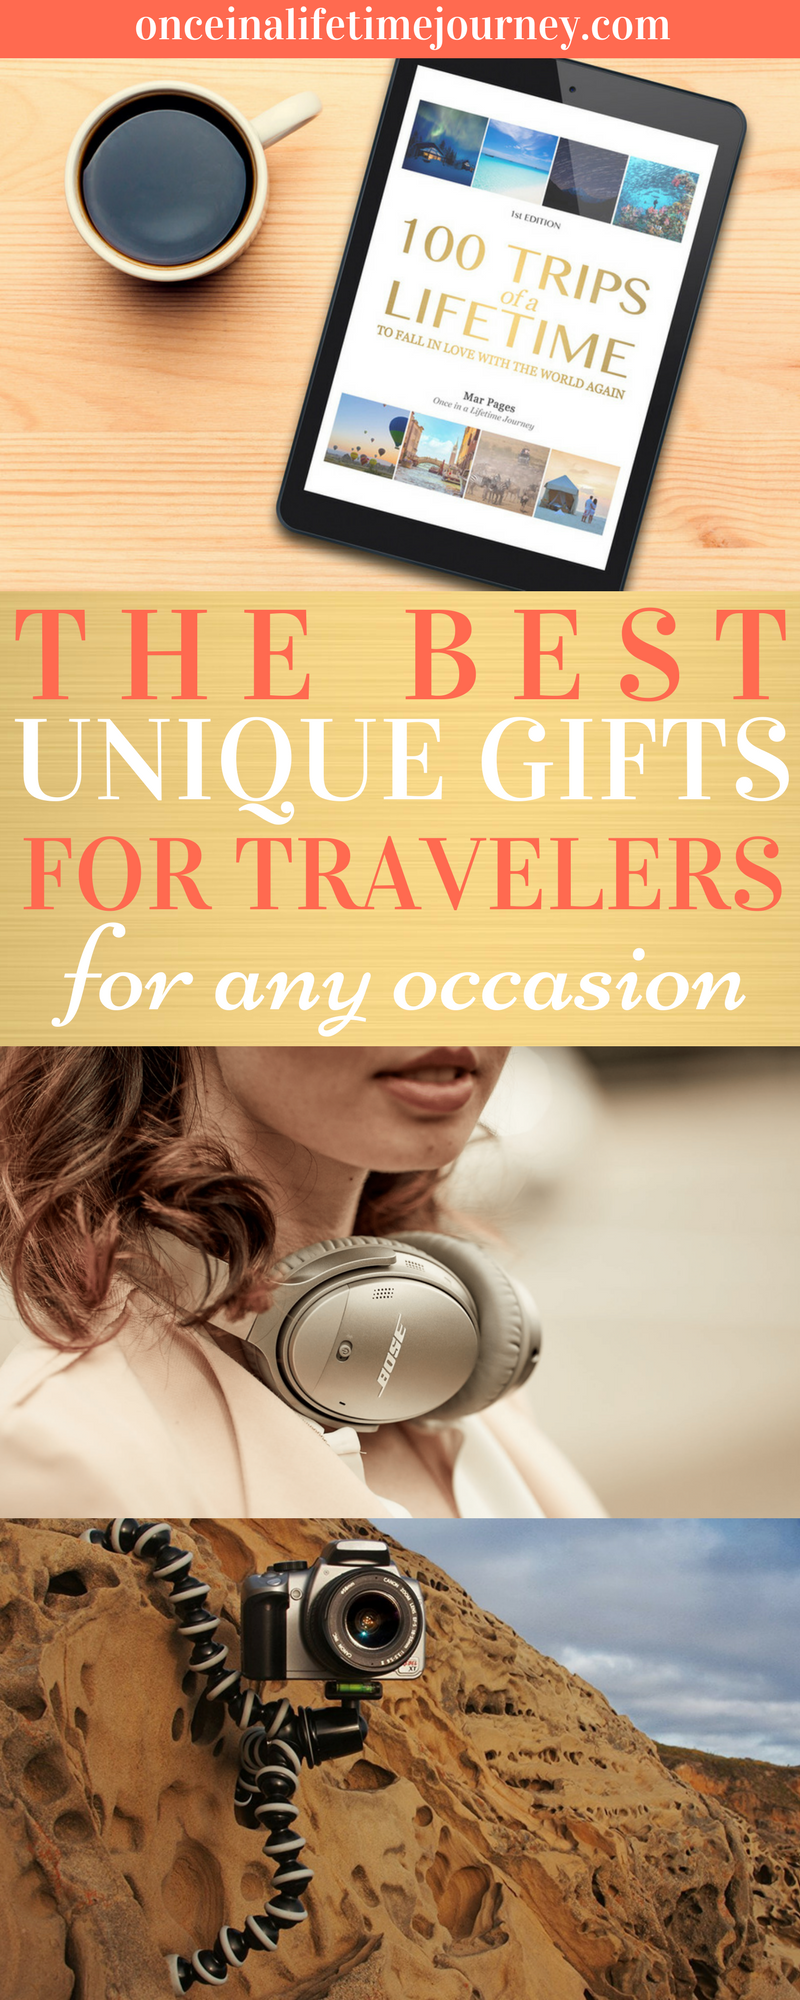 Original And Fabulous Gifts For Travelers For Any Occasion